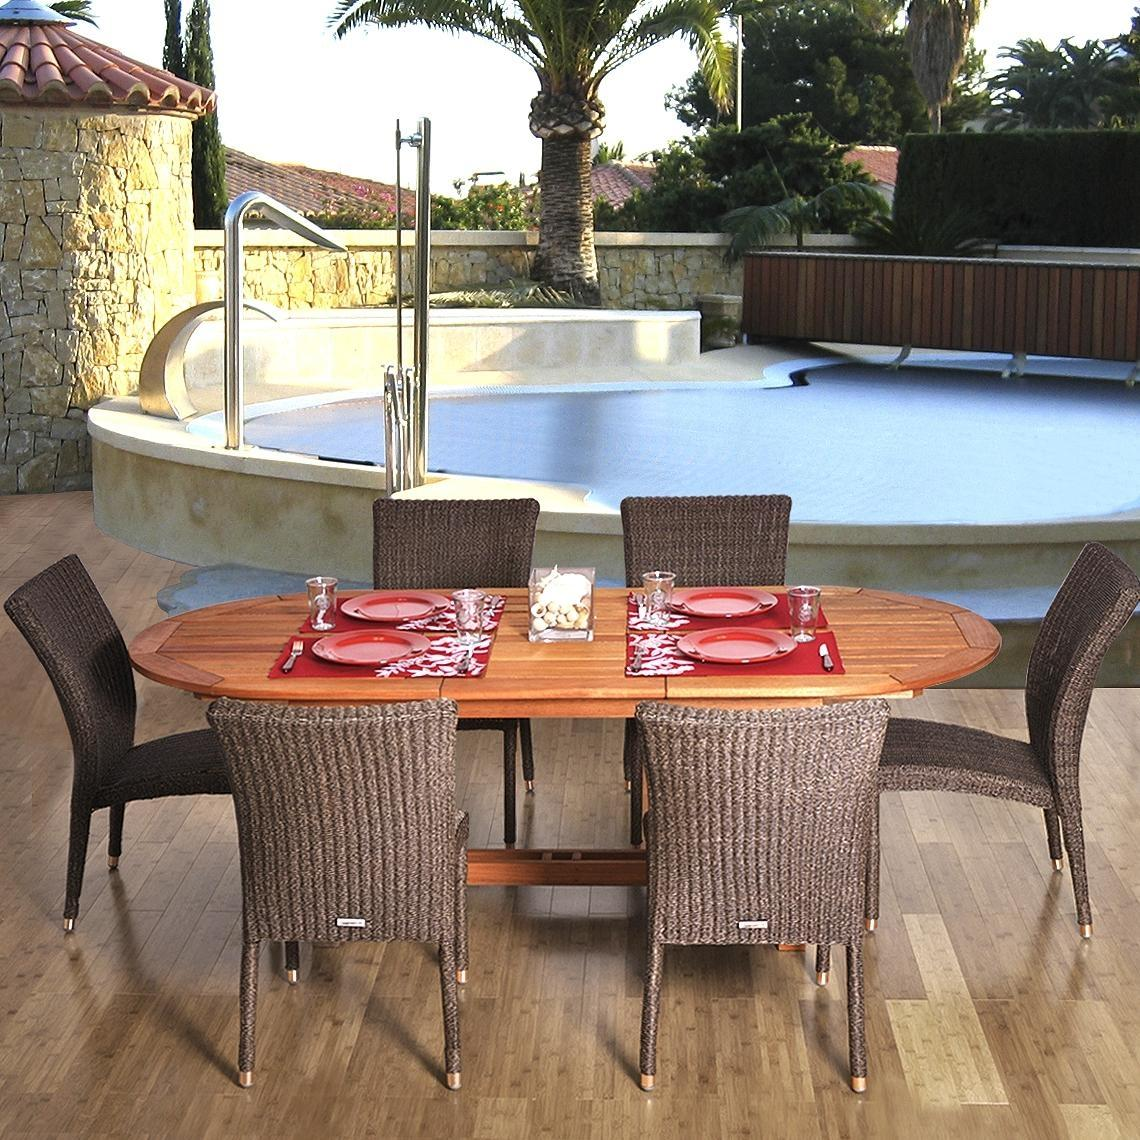 Amazonia Lemans 6-Person Resin Wicker Patio Dining Set With Extension Table And Stacking Chairs 2866256